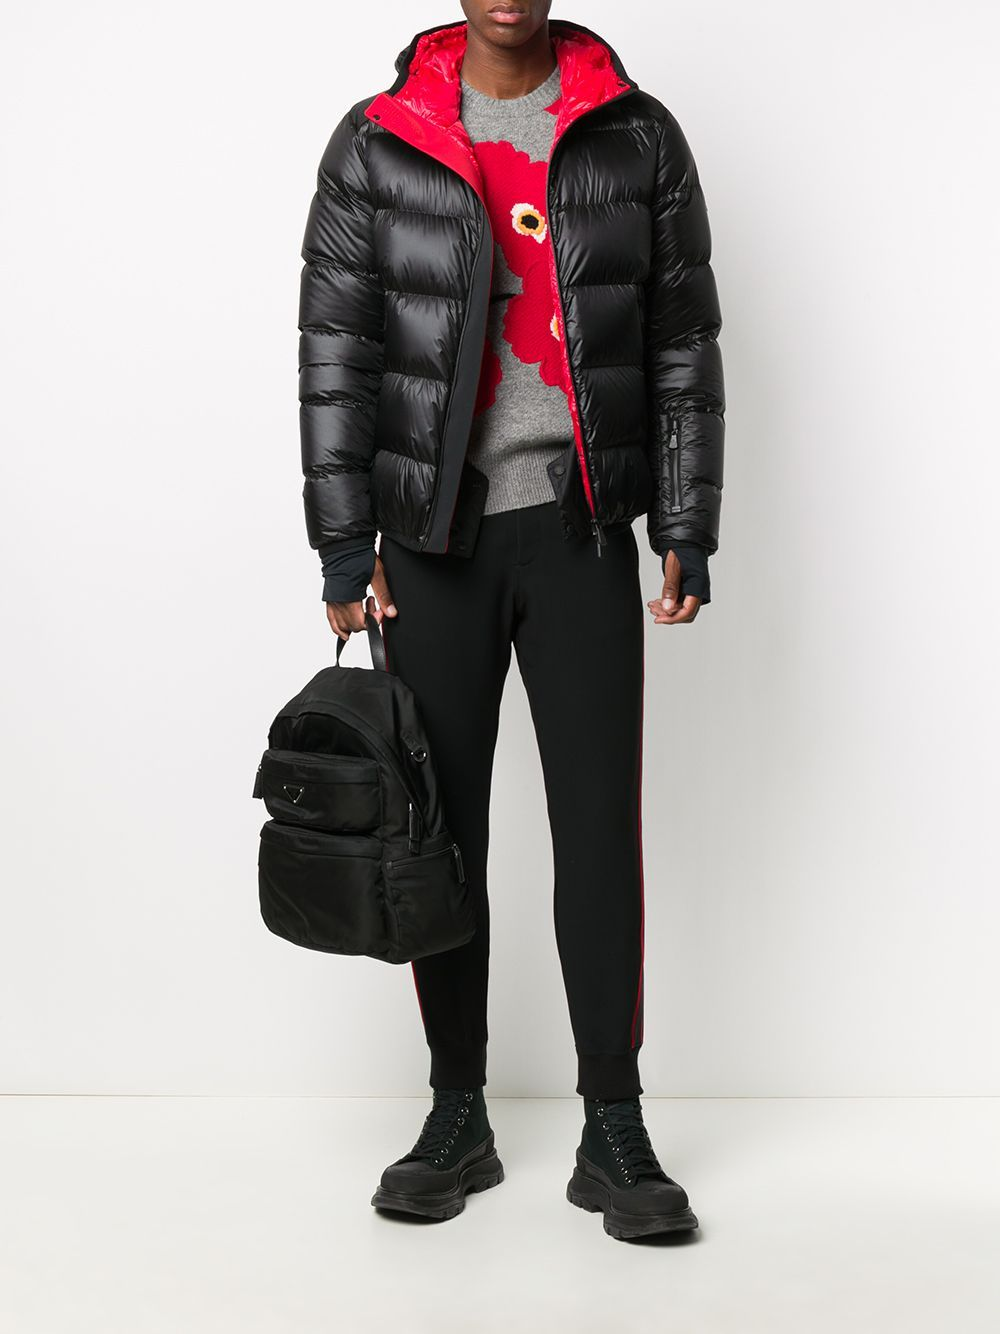 Moncler Grenoble hintertux puffer jacket black